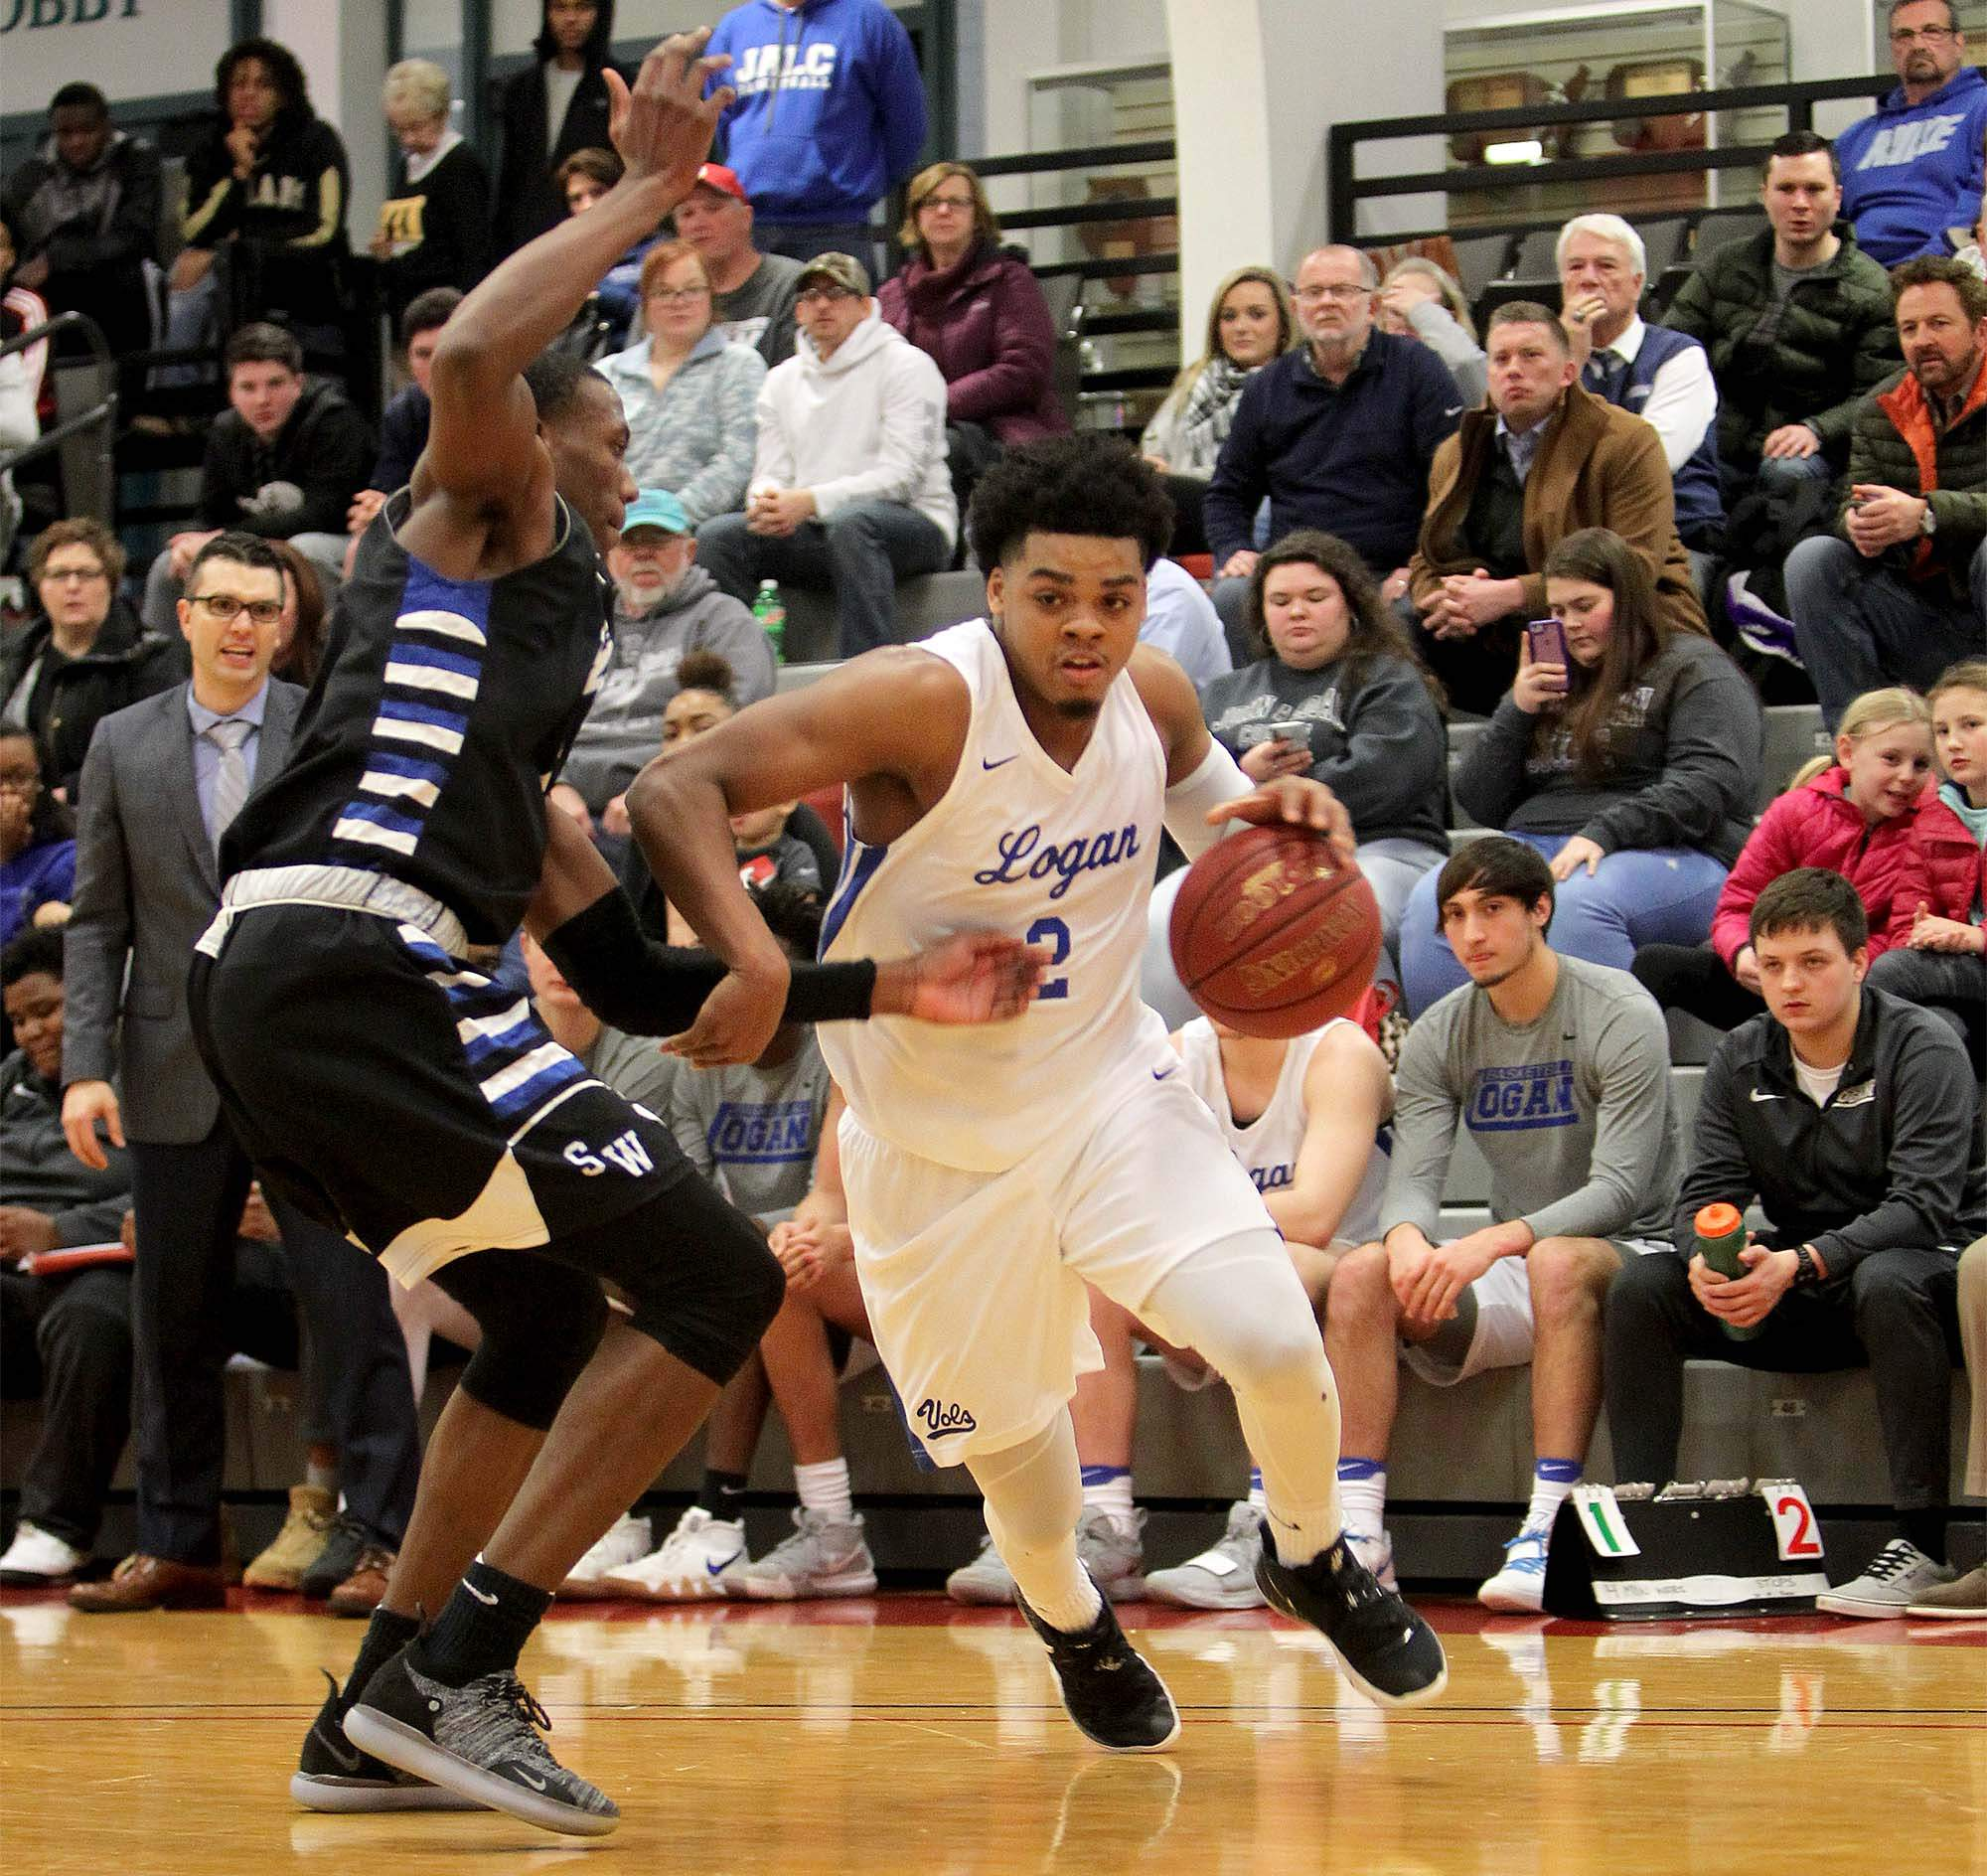 John A. Logan College sophomore David Sloan had 15 points in helping the Vols to an 83-72 win over Southwestern Illinois College Tuesday night during the District 16 Tournament at Rend Lake College.